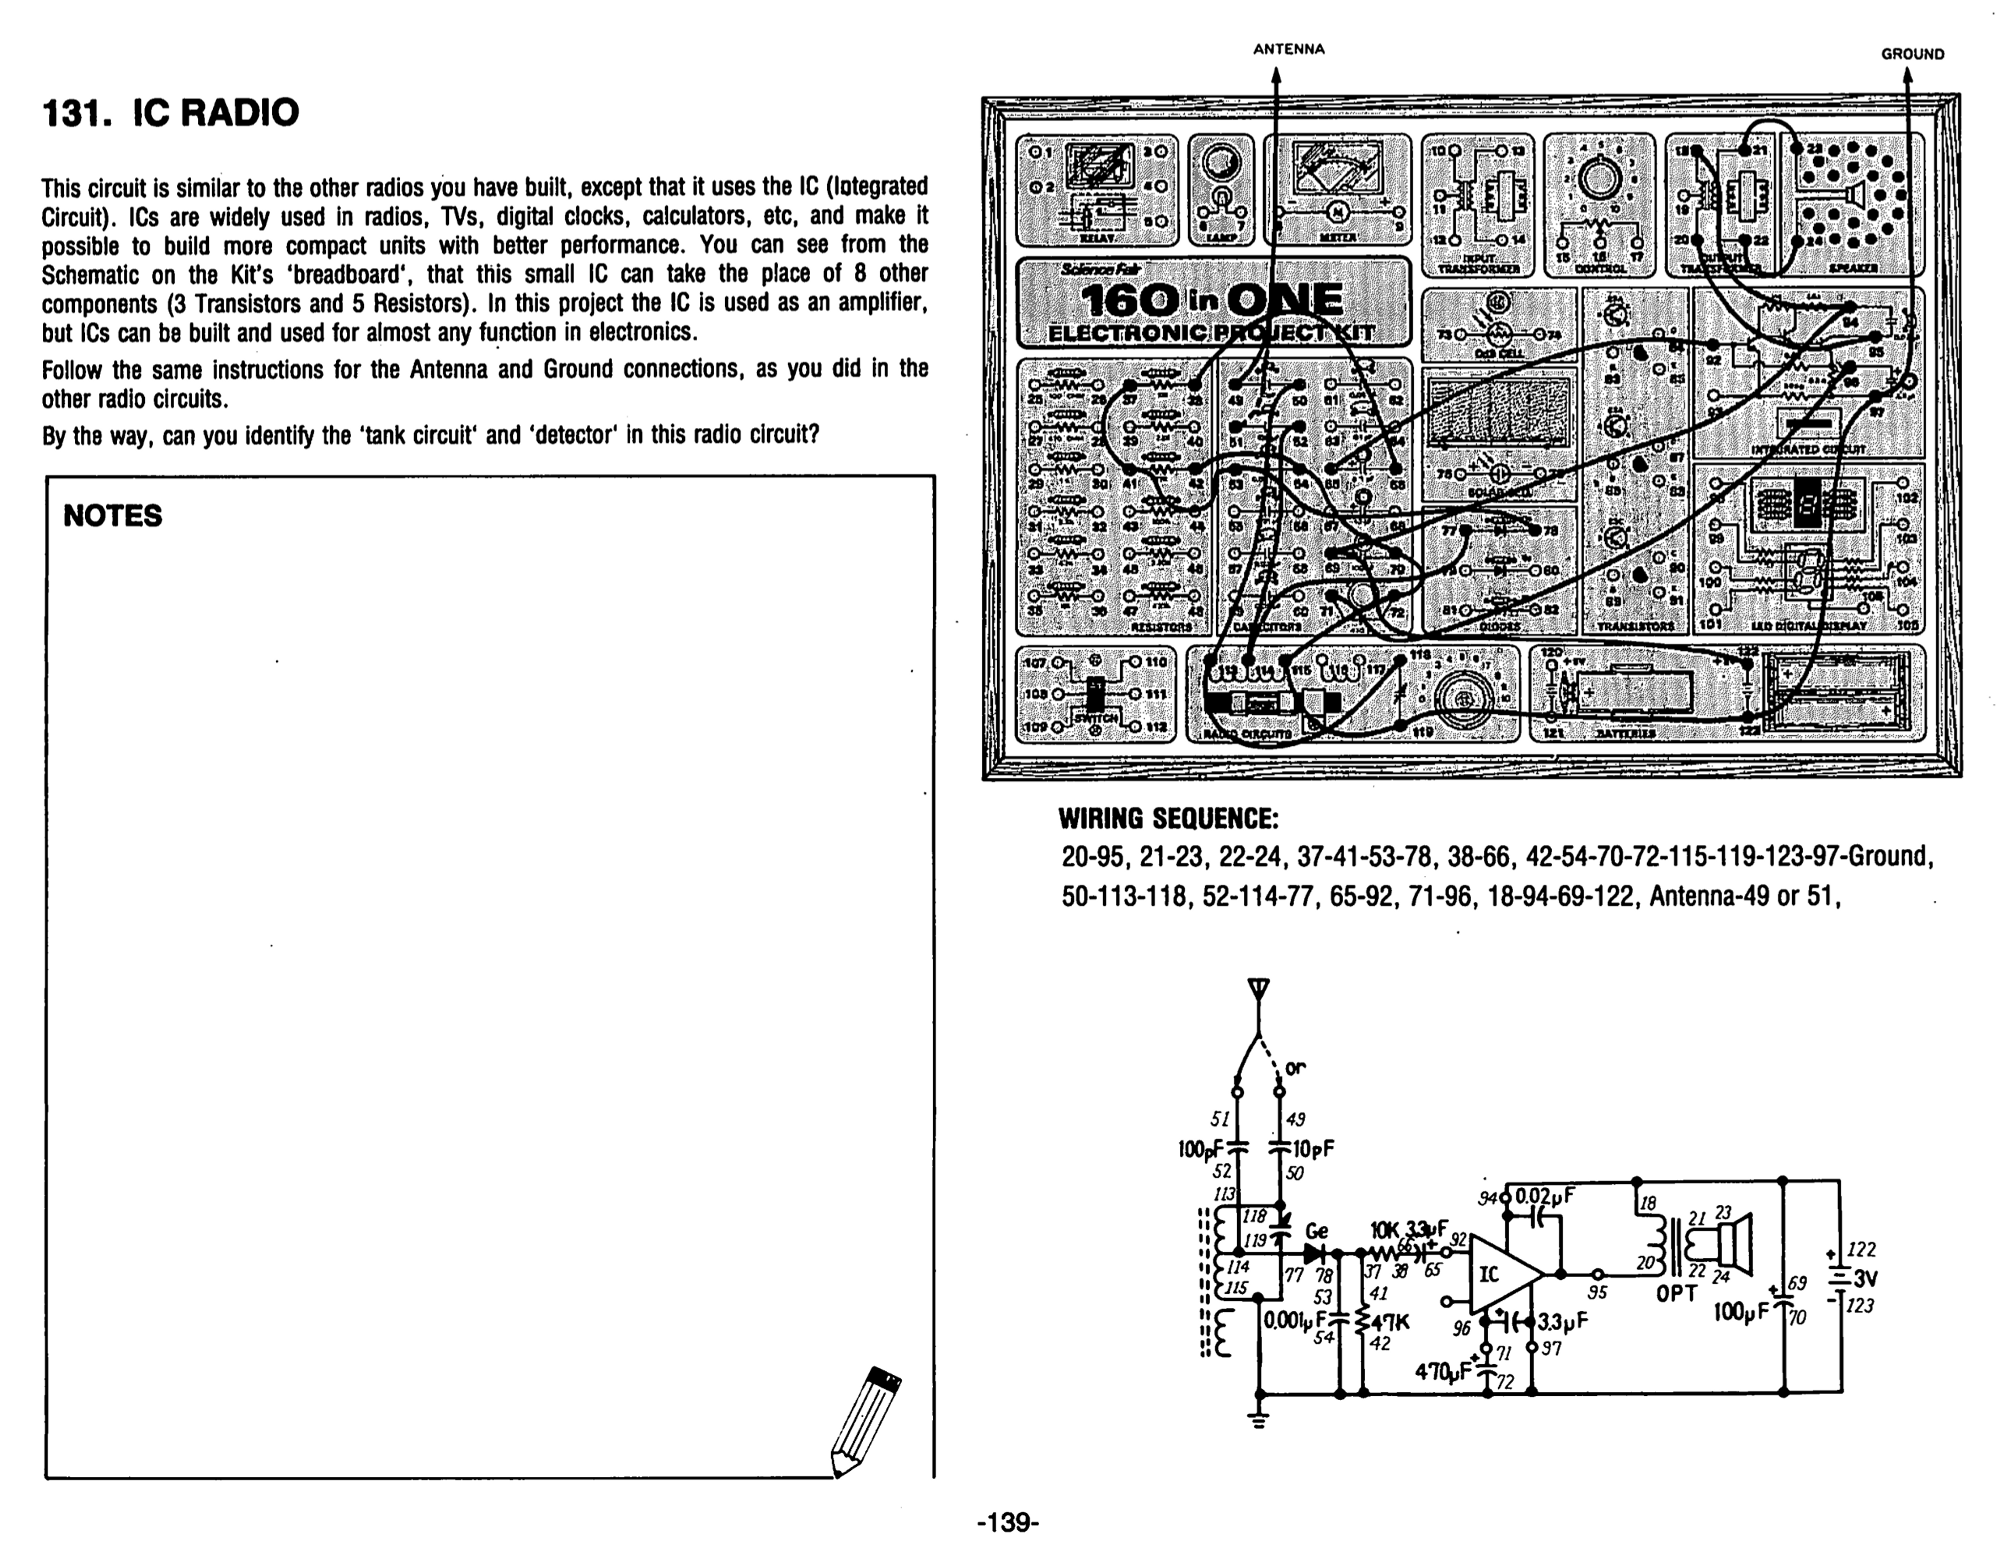 Electronic Project Kits Hands On With A Vintage 160 In 1 Morse 300 Sewing Machine Threading Diagram This Particular Ic Is Not Too Interesting Modern Times It Fairly Obscure And Many Other Amplifiers Are Available Instead